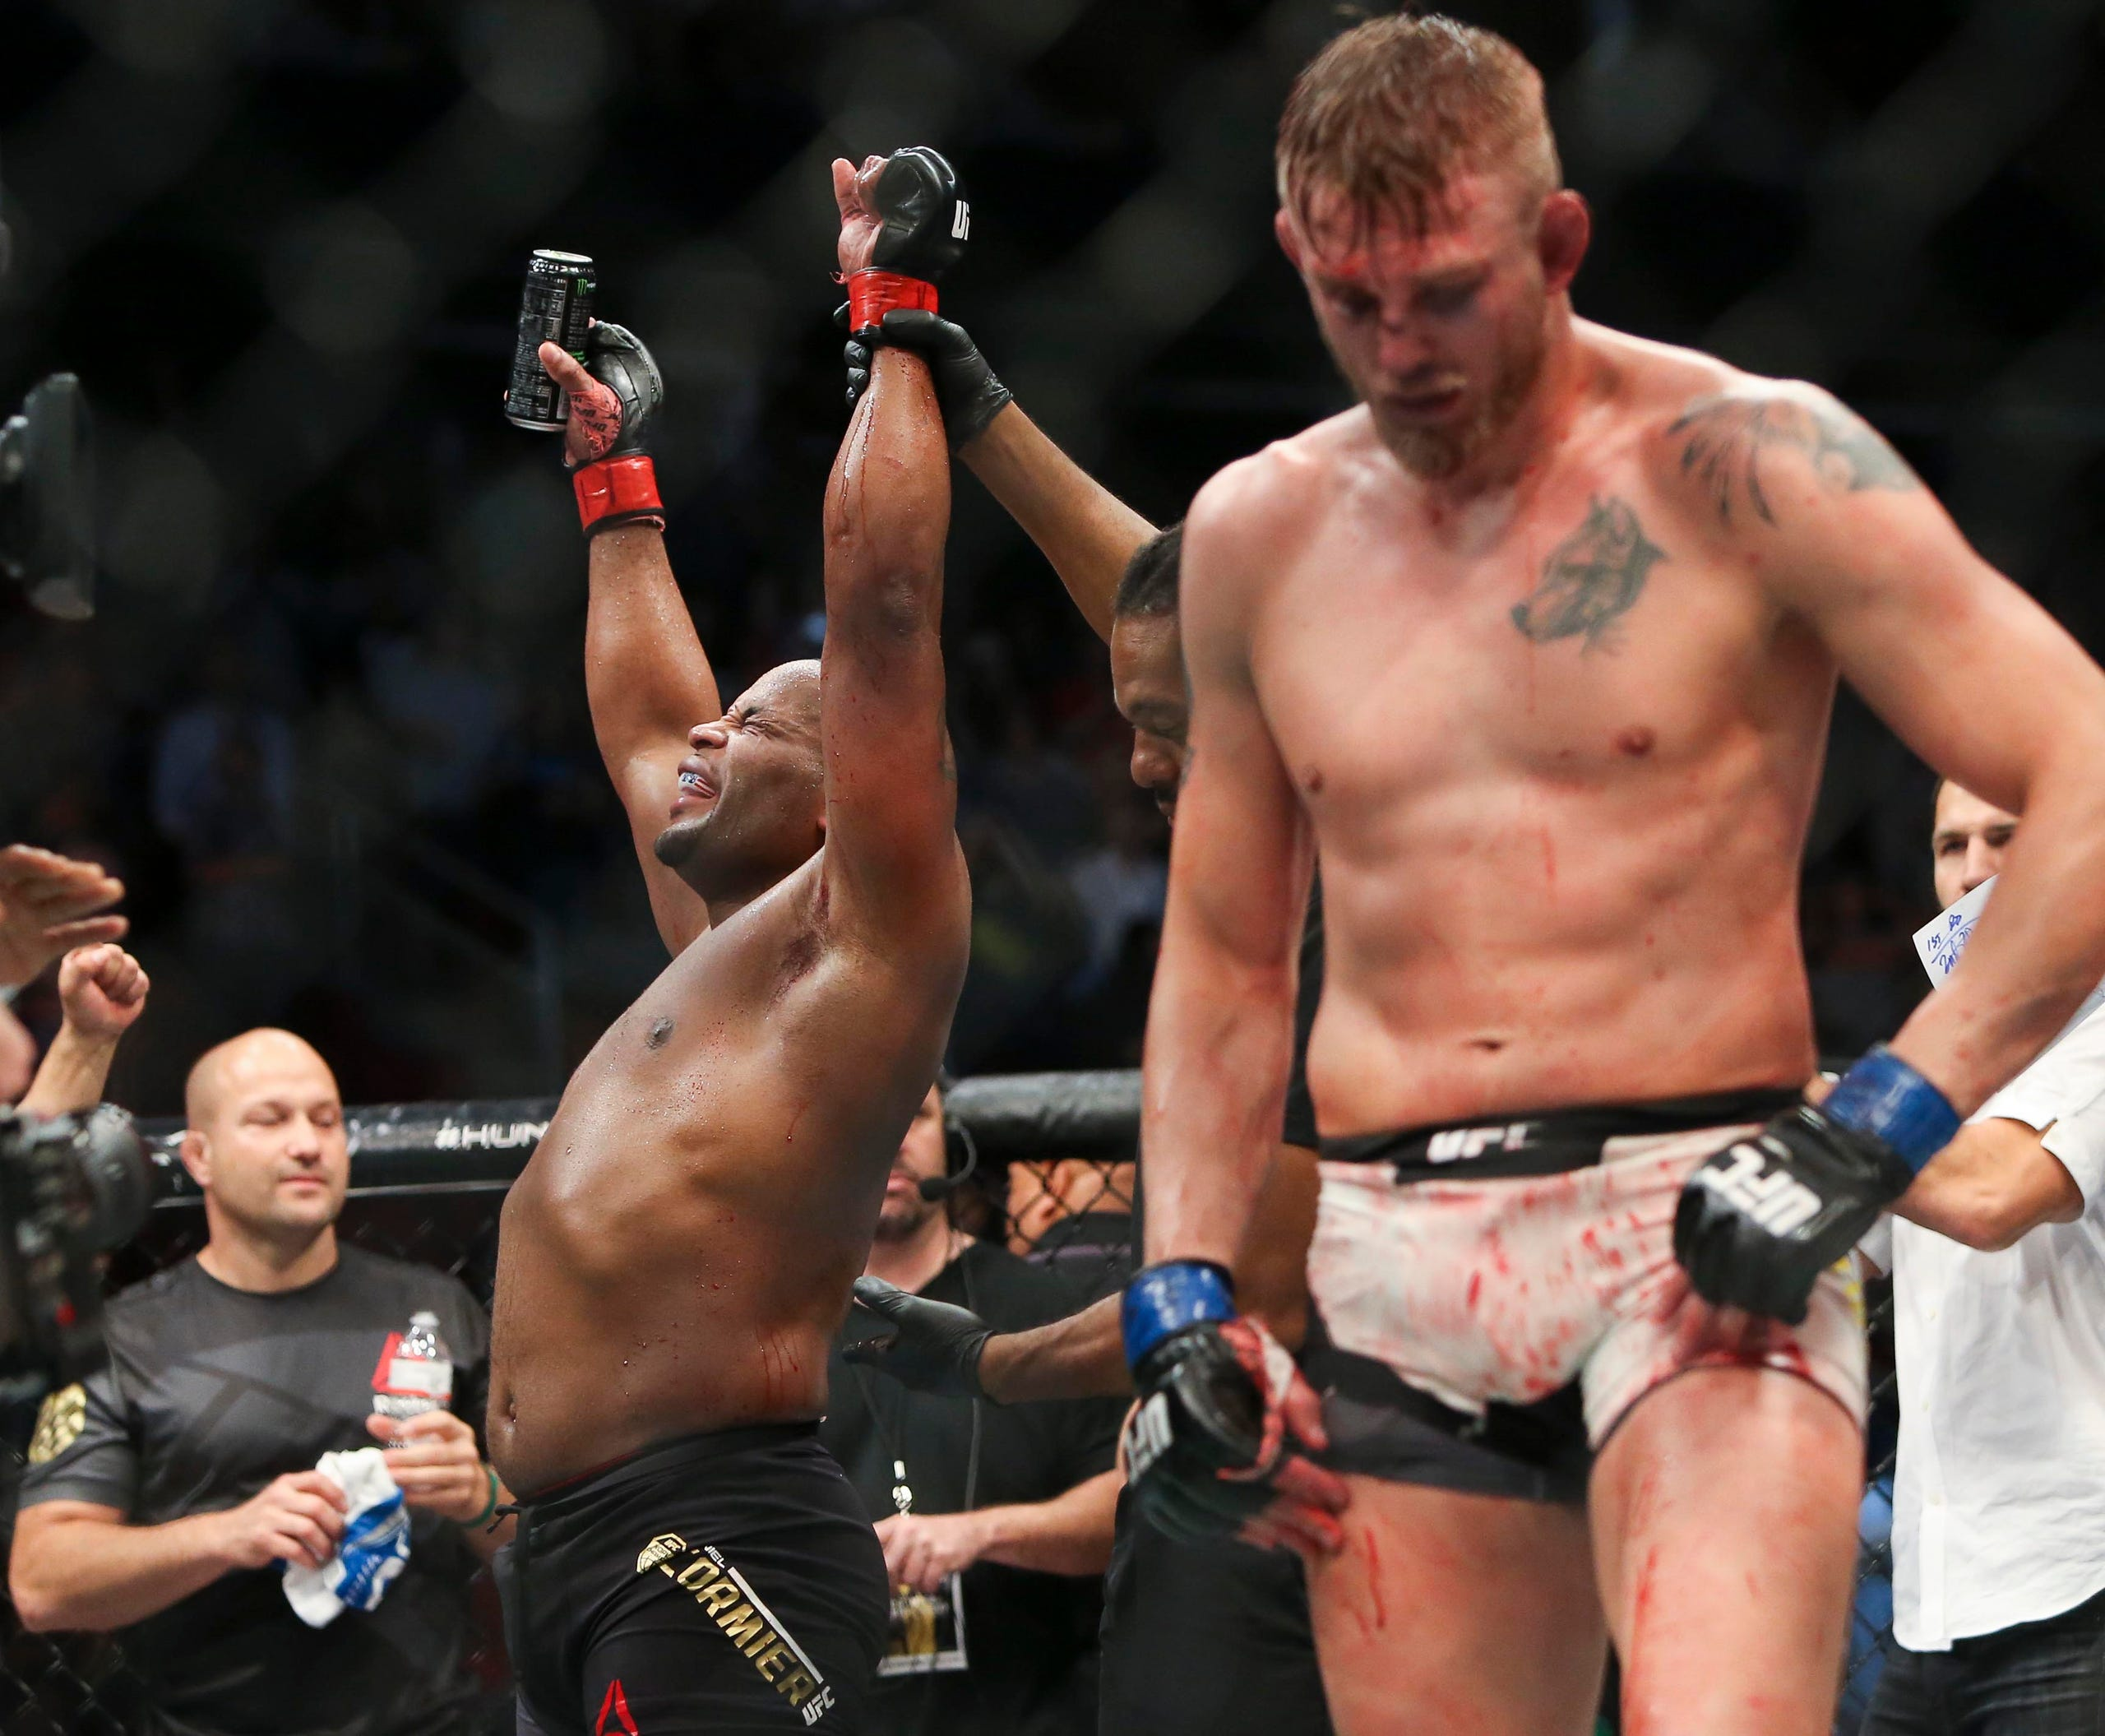 Daniel cormier vs alexander gustafsson betting odds can you bet on the derby online